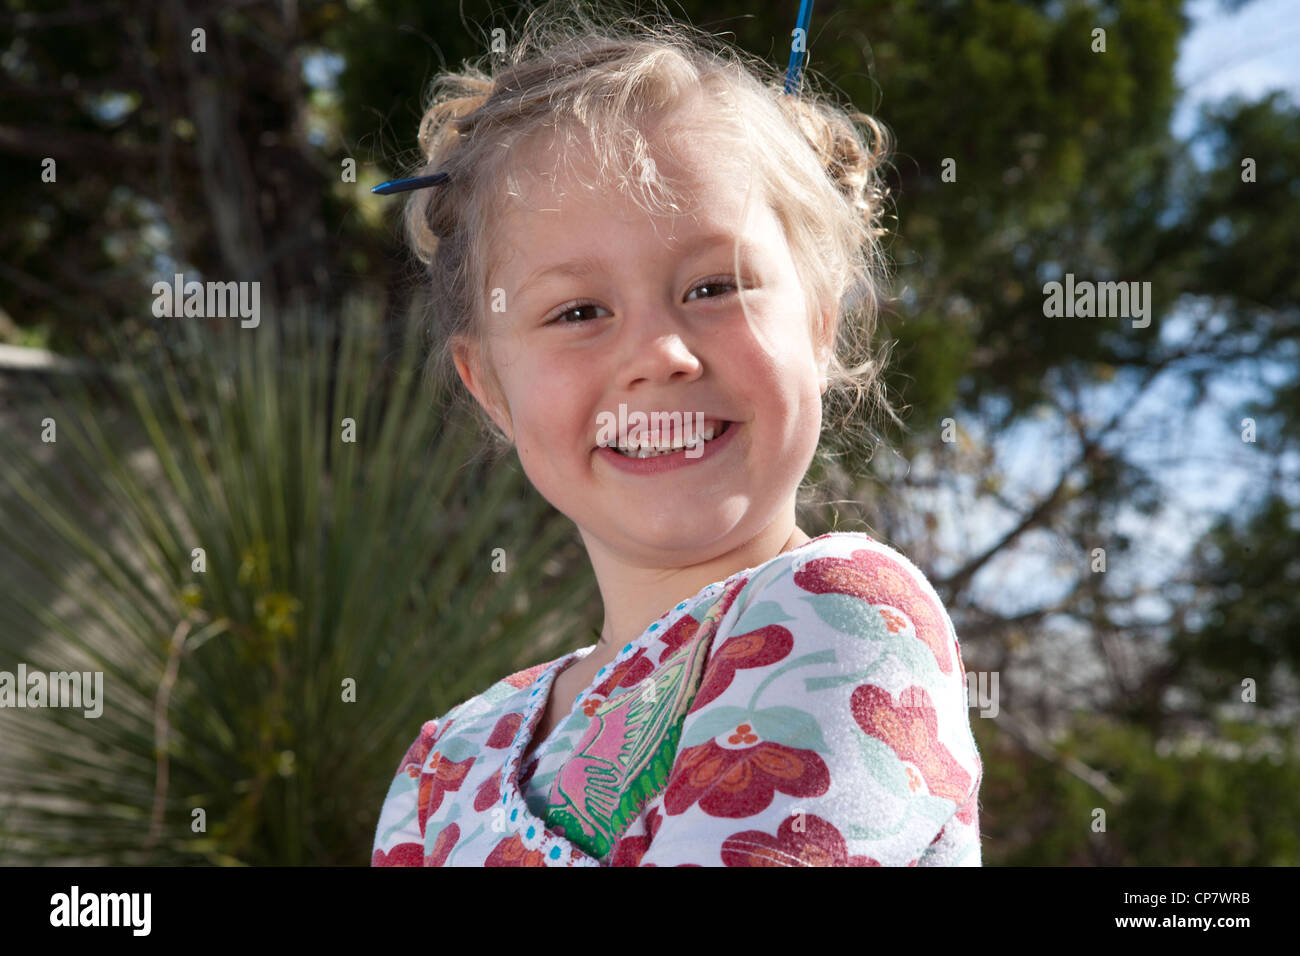 Five year old girl smiling confidently at the camera. Stock Photo